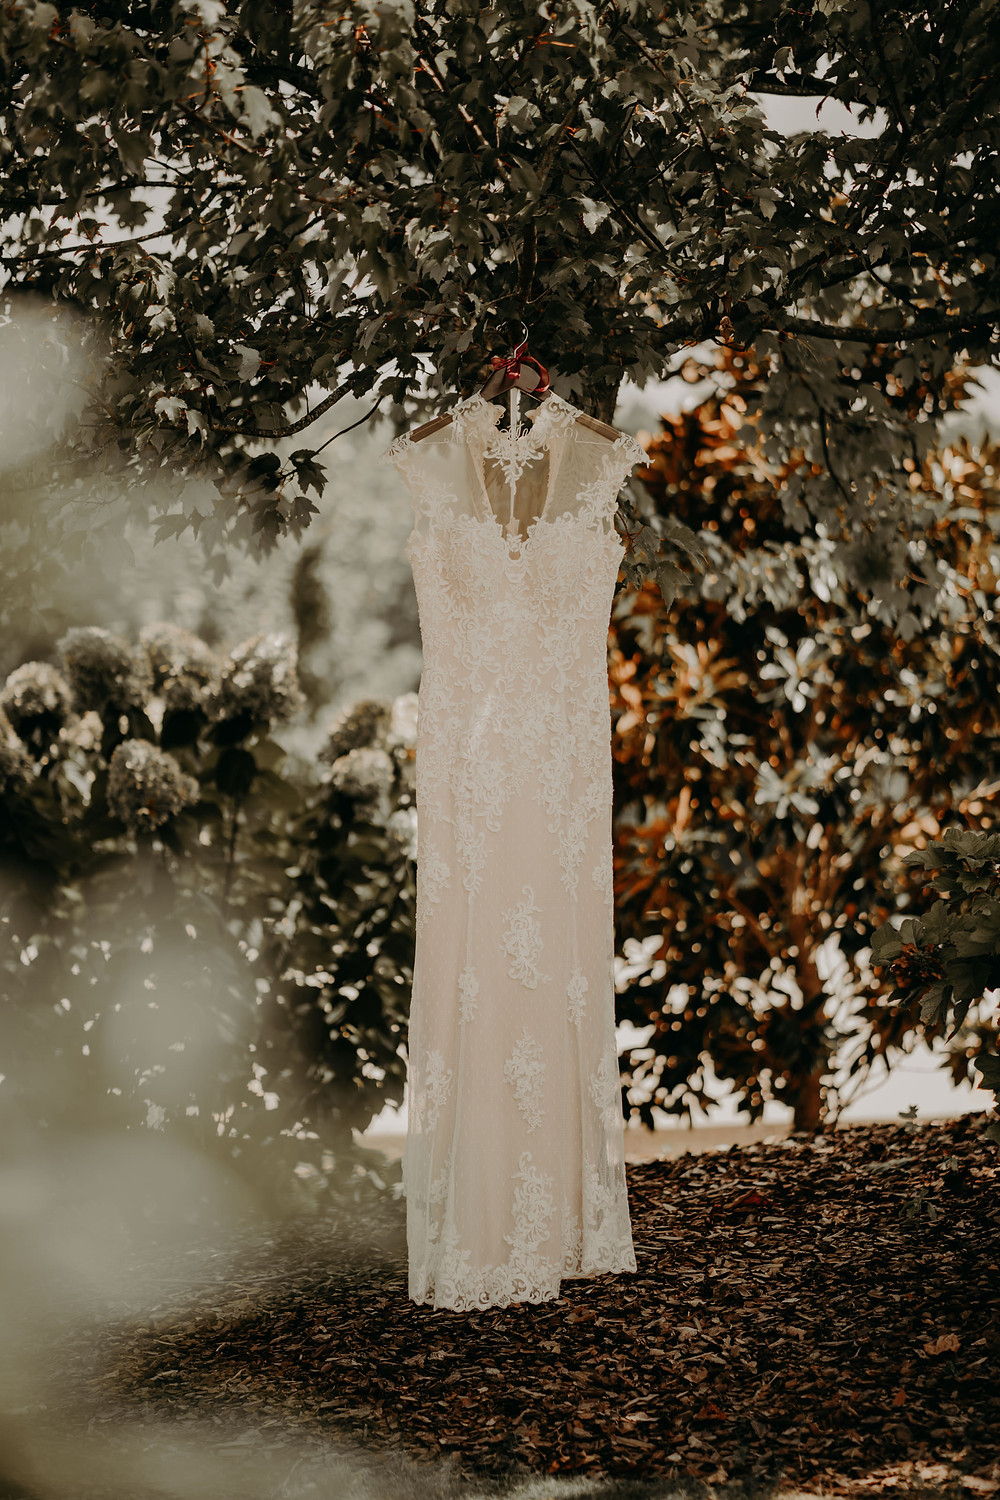 lace wedding dress in a hanger